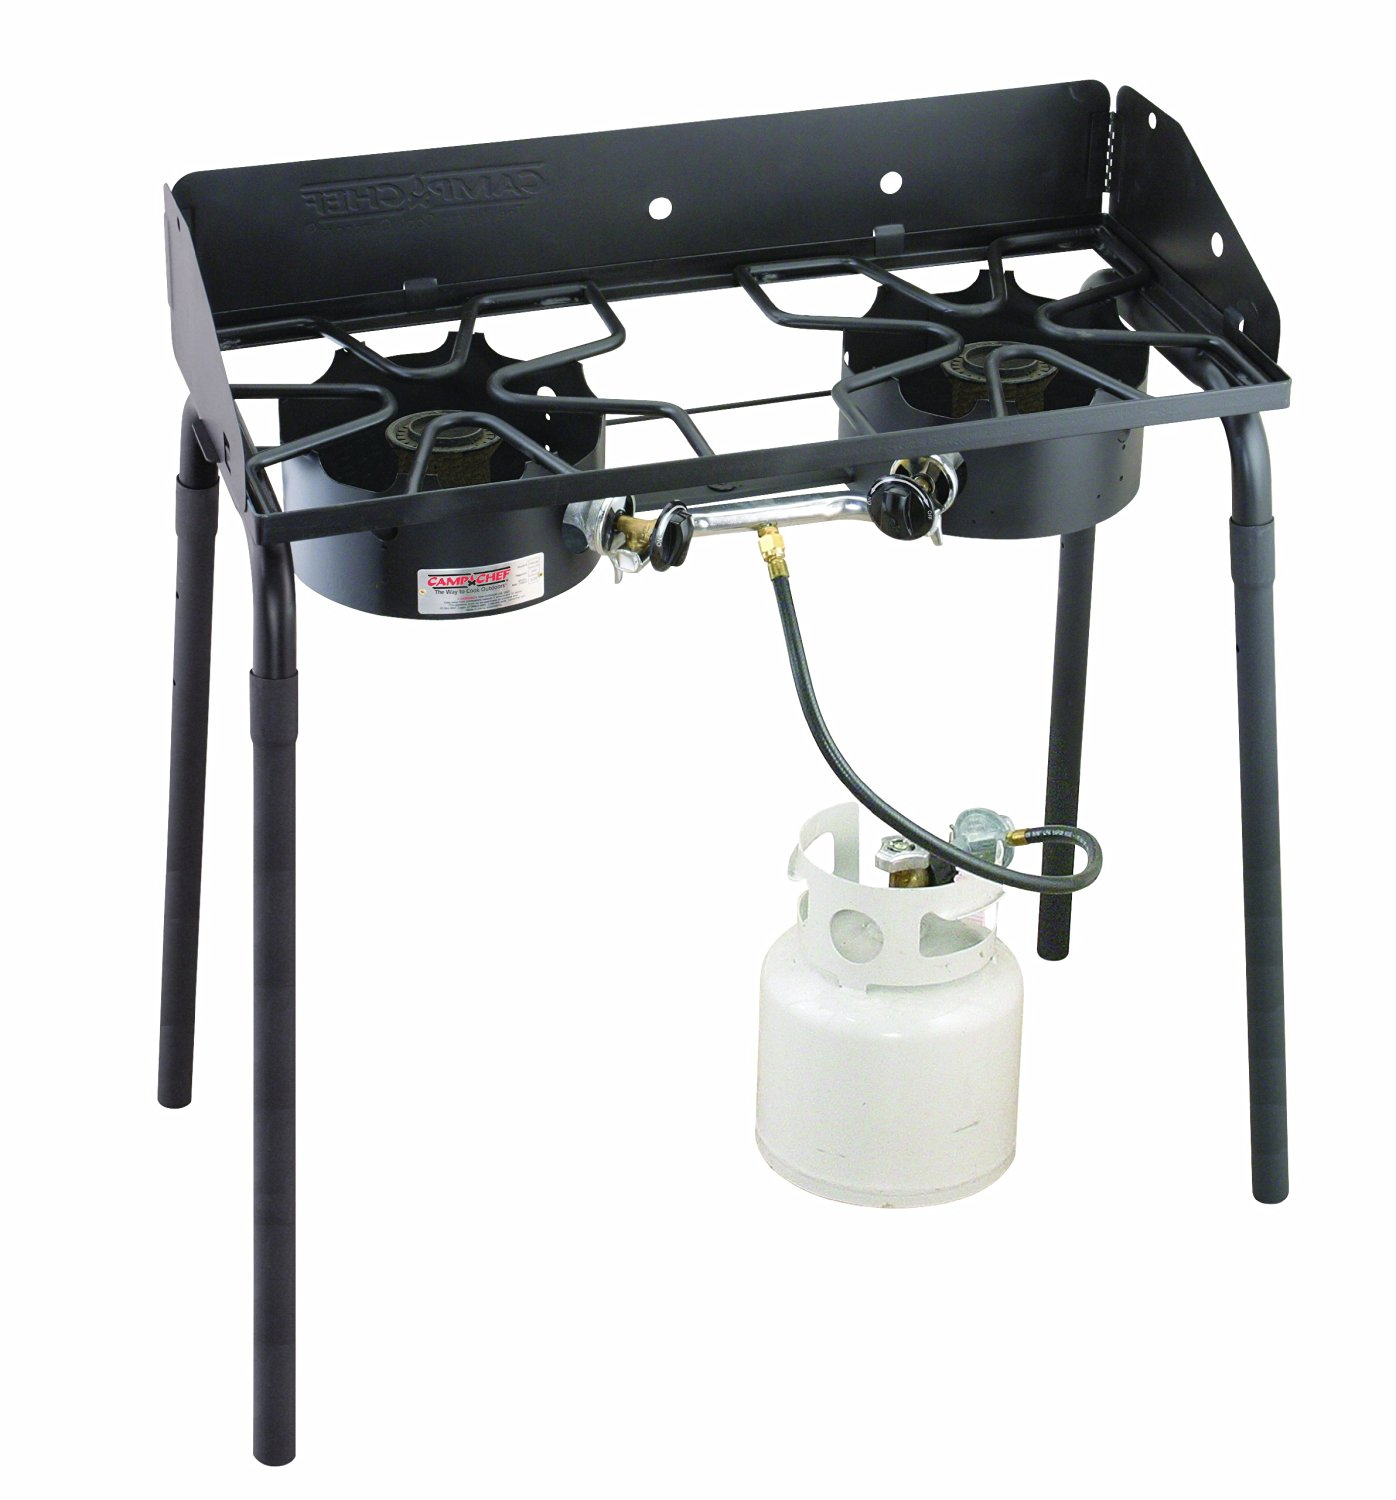 Camp Chef Outdoorsman High / Low 2 Burner Stove